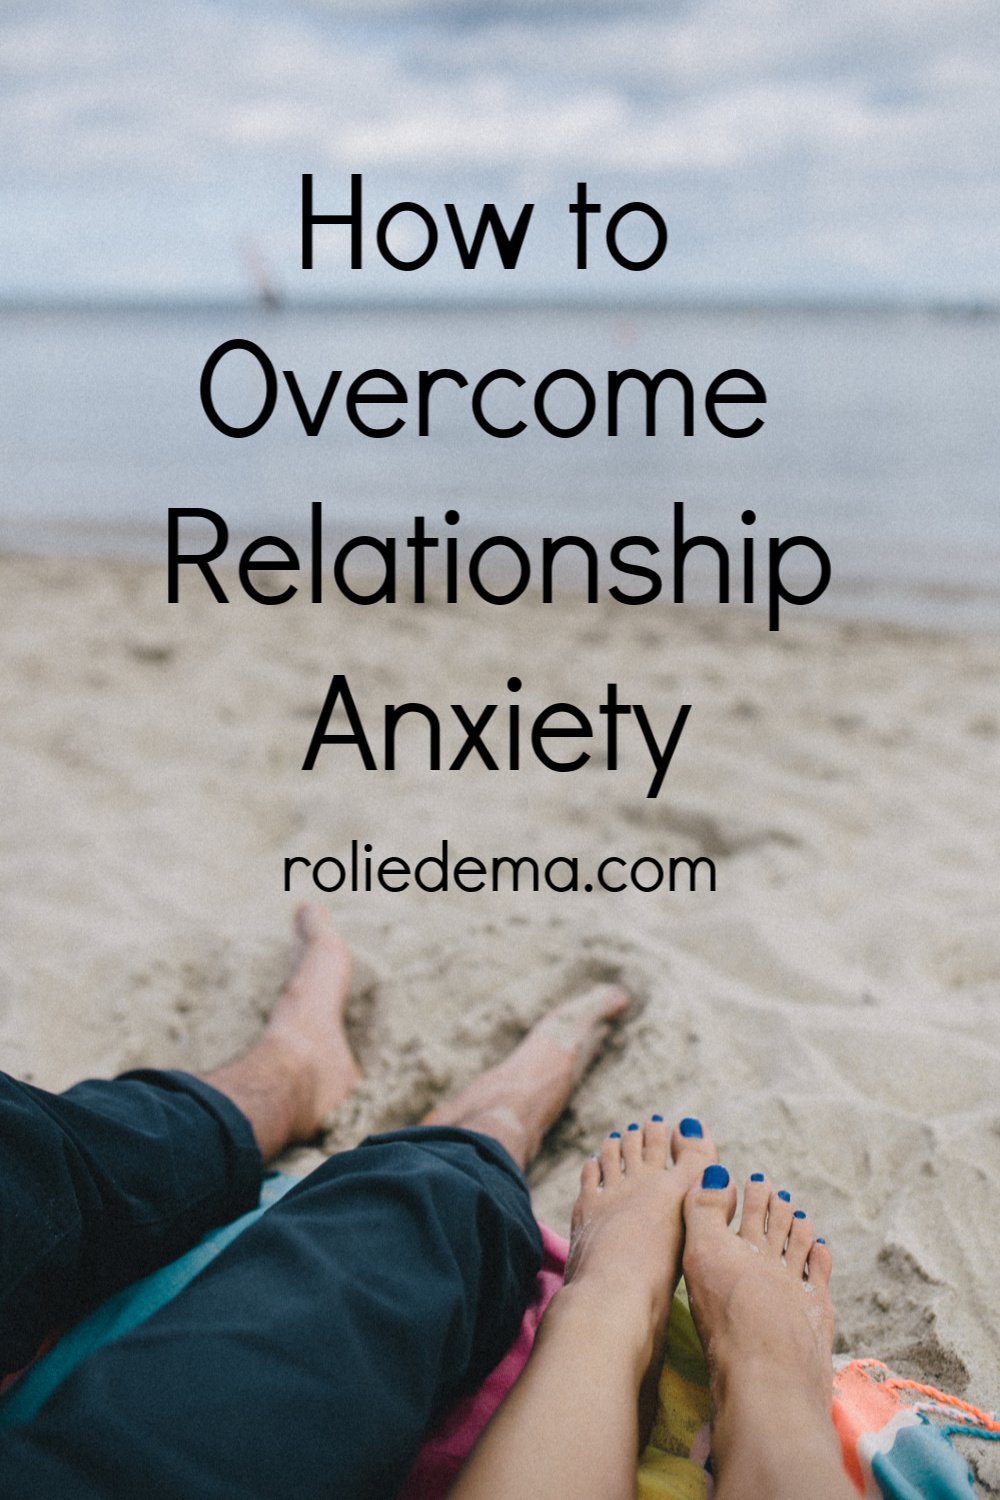 Relationship Anxiety - Why it Arises & How to Overcome It